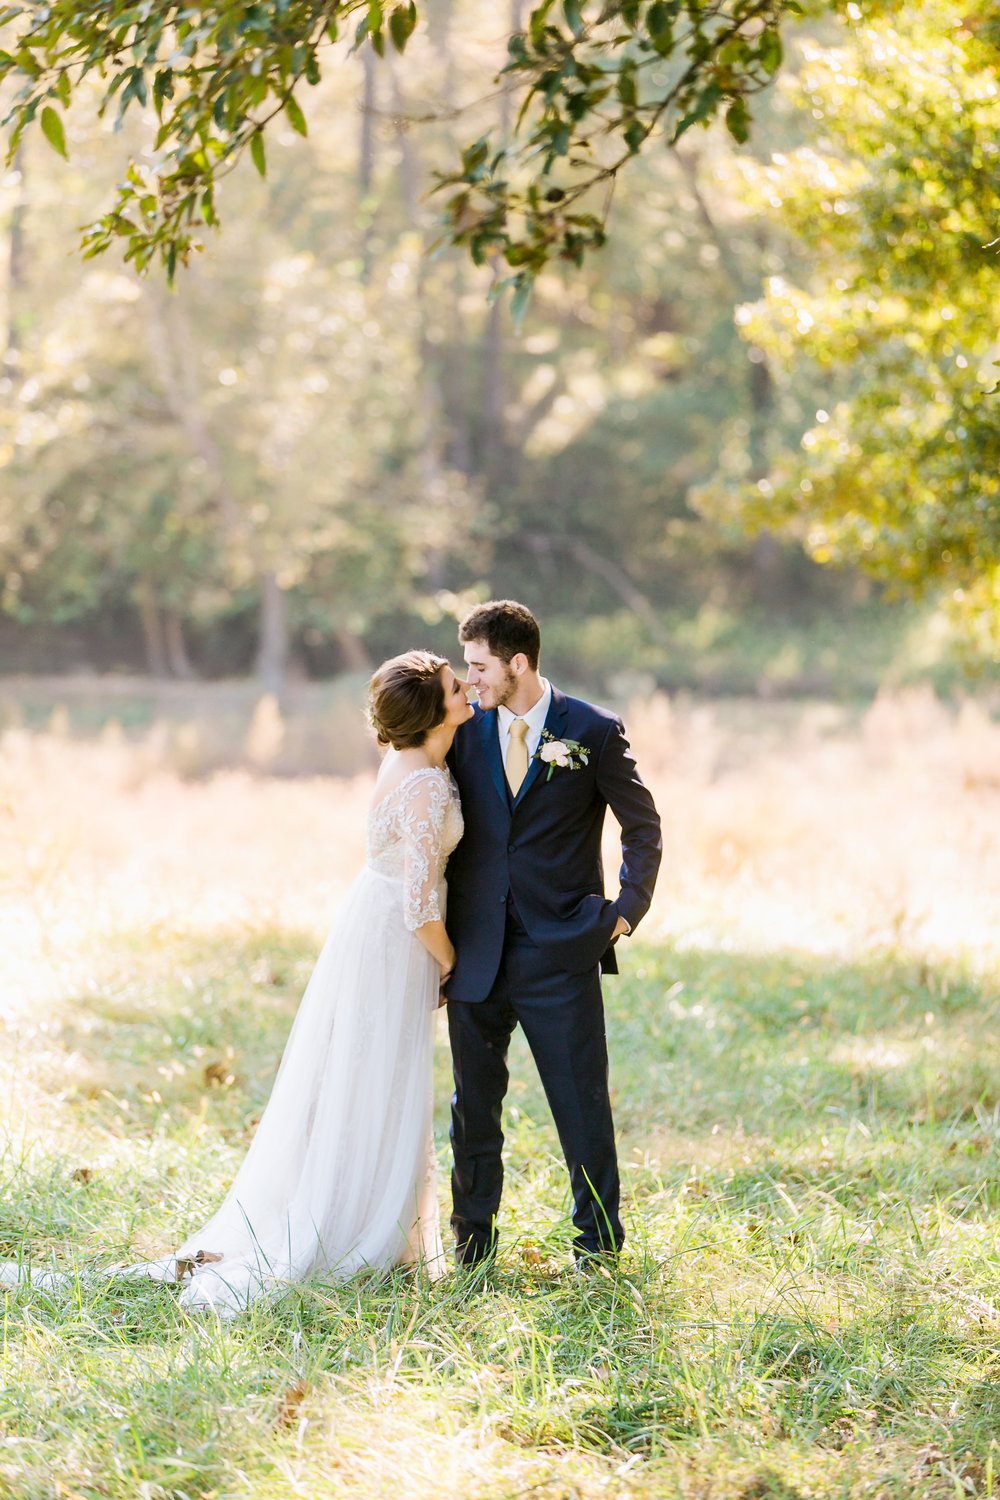 MissouriRusticWedding_StLouisWeddingPhotographer_AliciaDan_CatherineRhodesPhotography-1417-Edit.jpg